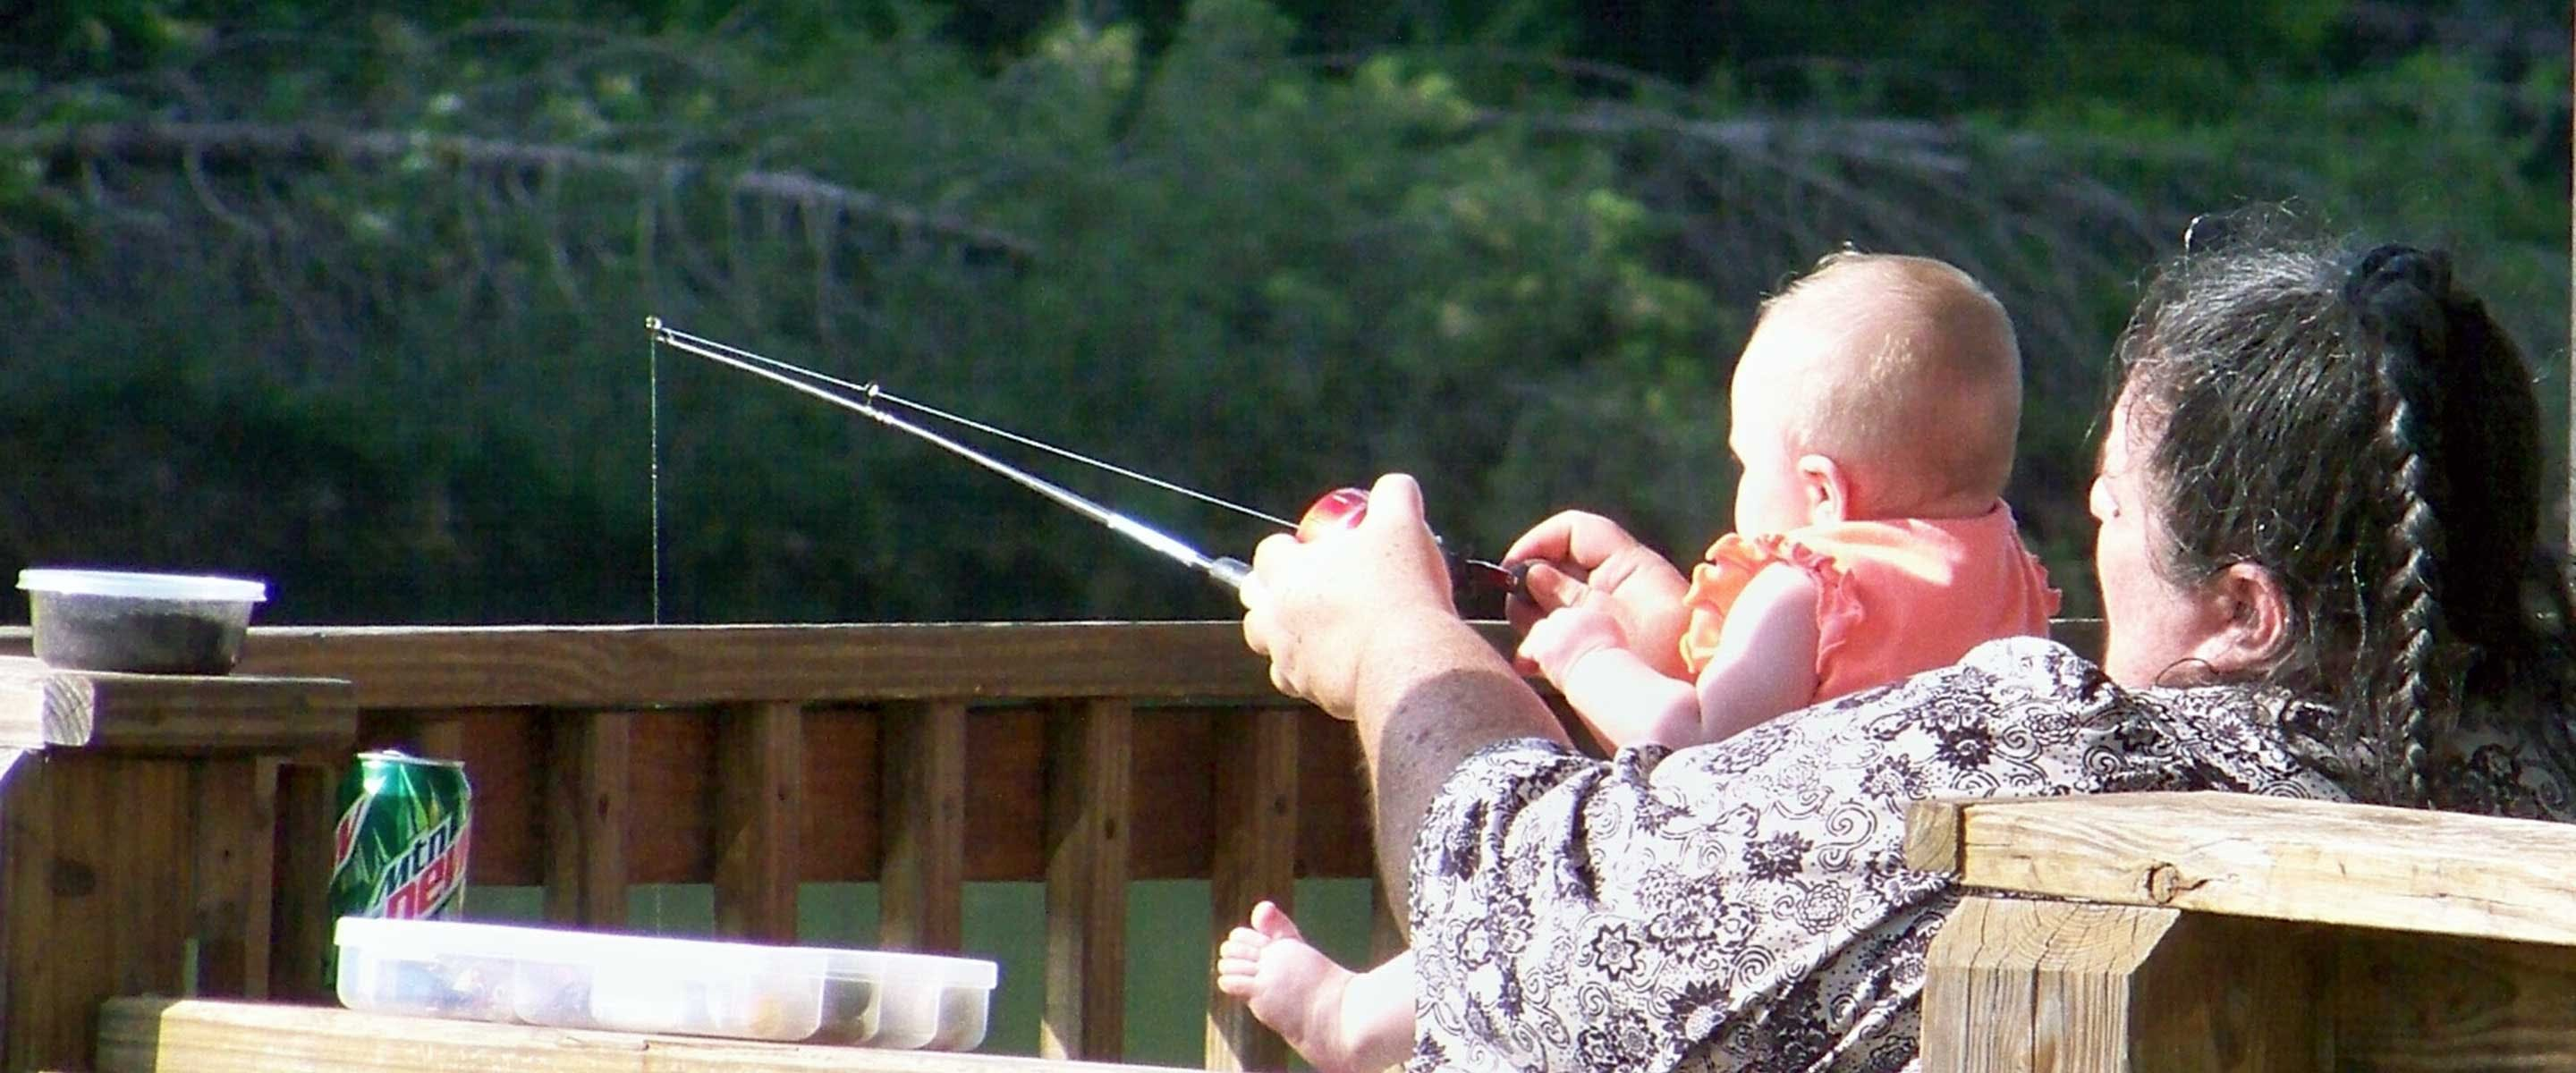 man fishing with baby in his lap